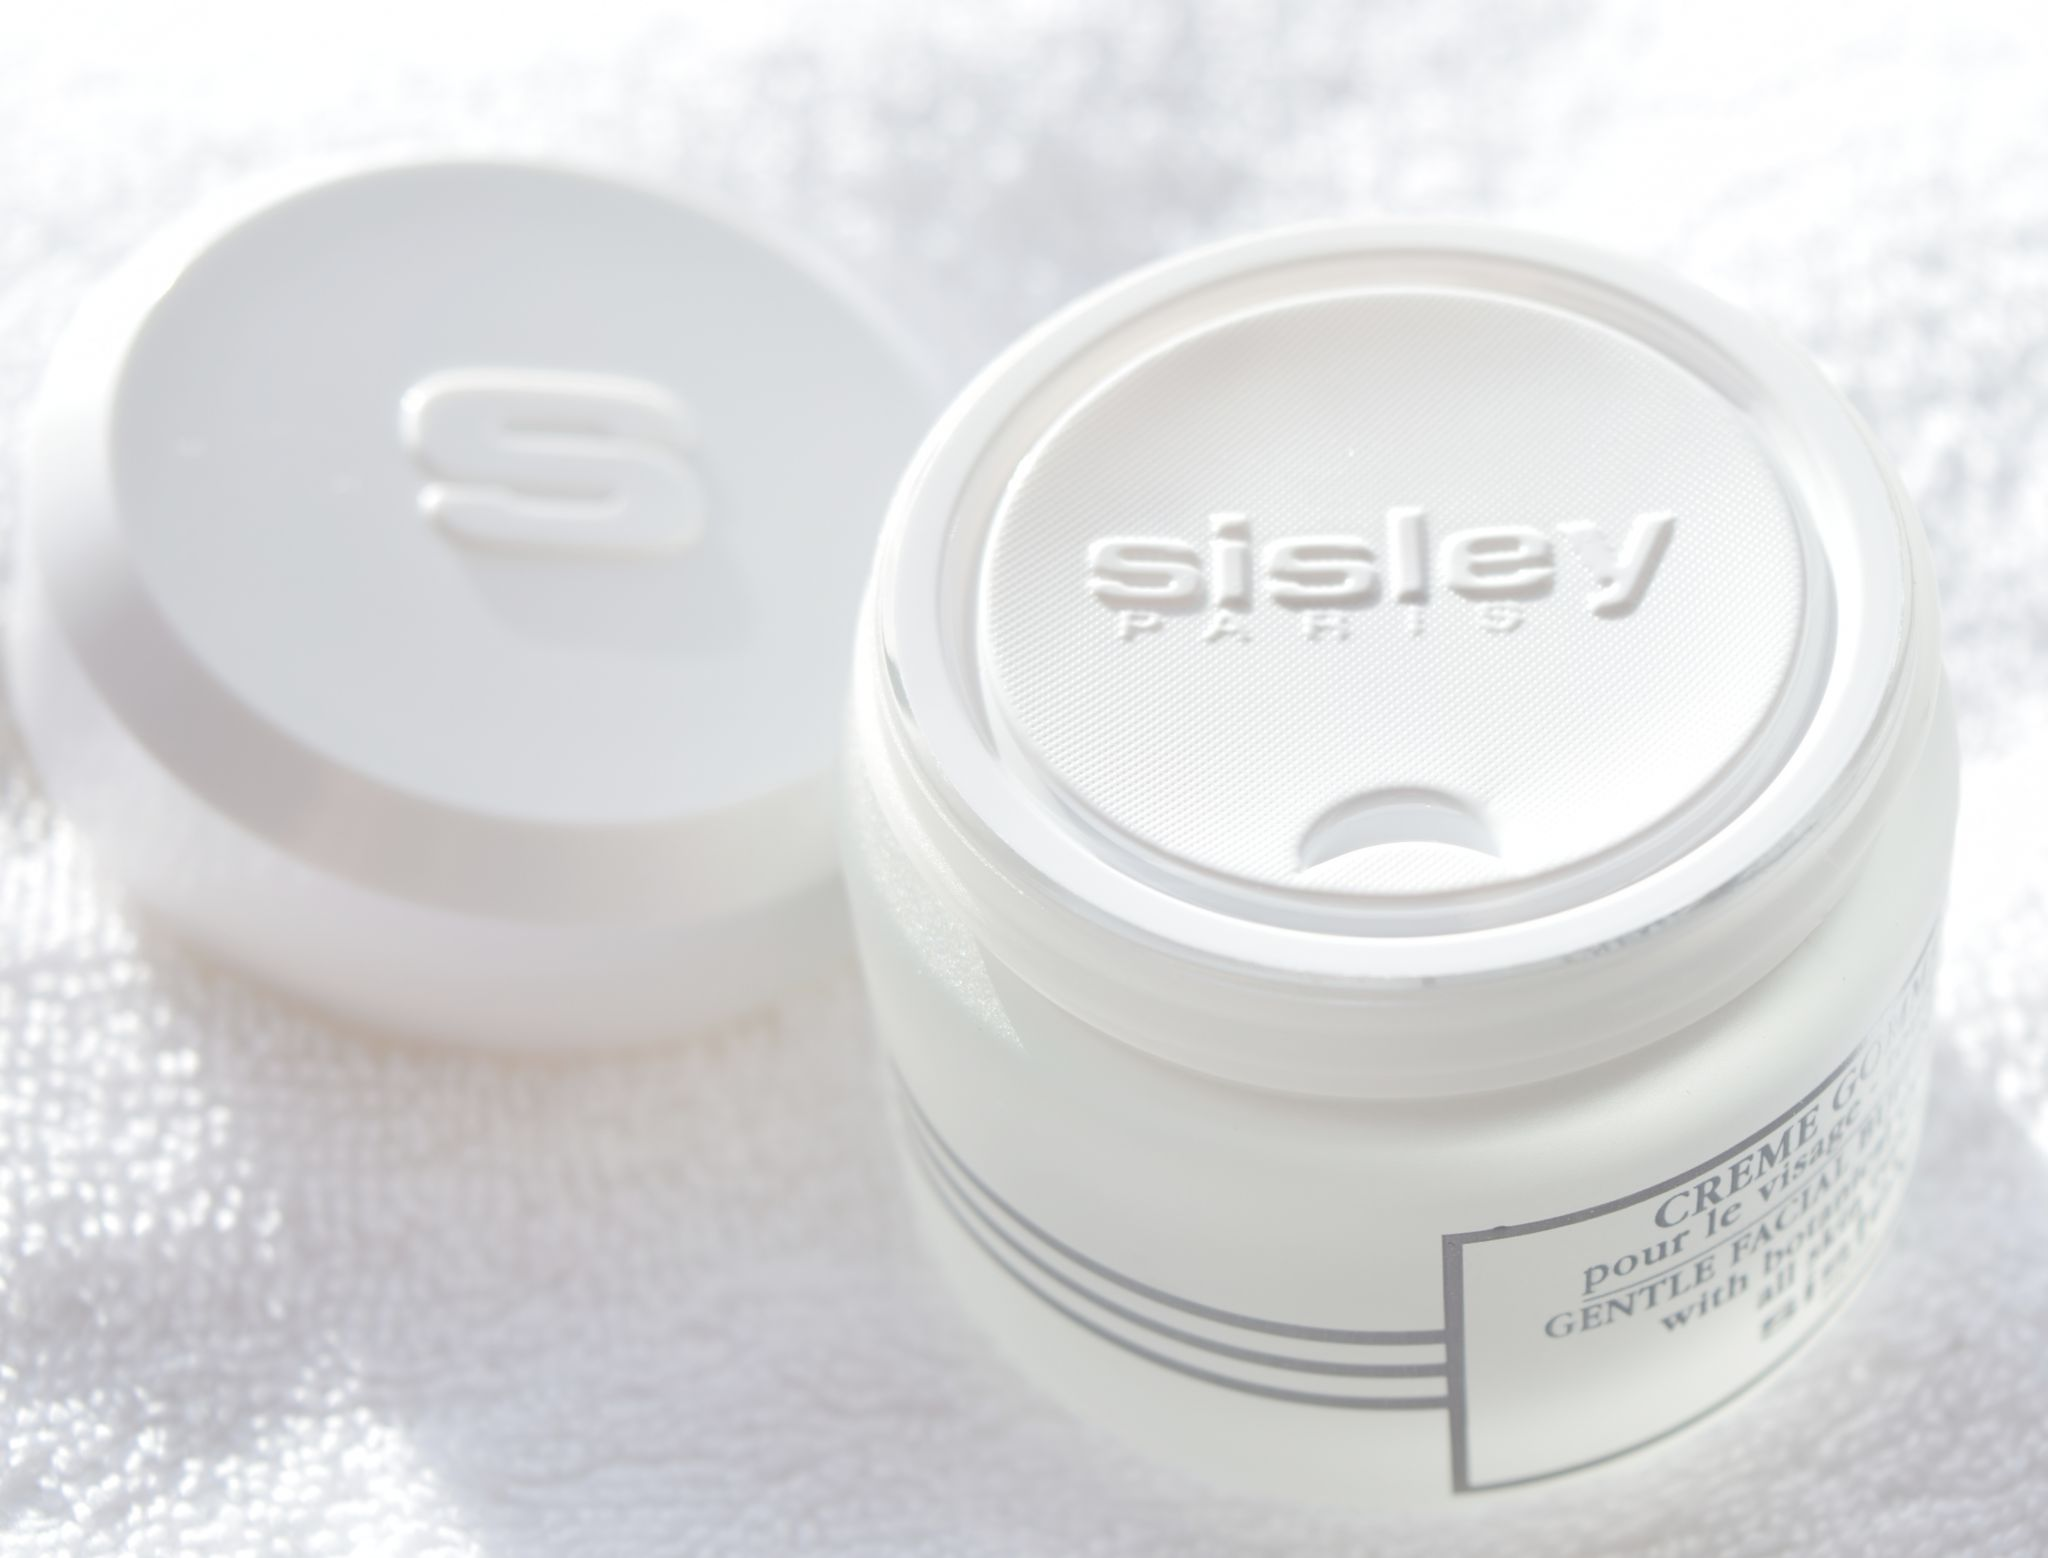 Sisley Gentle Buffing Facial Cream 2